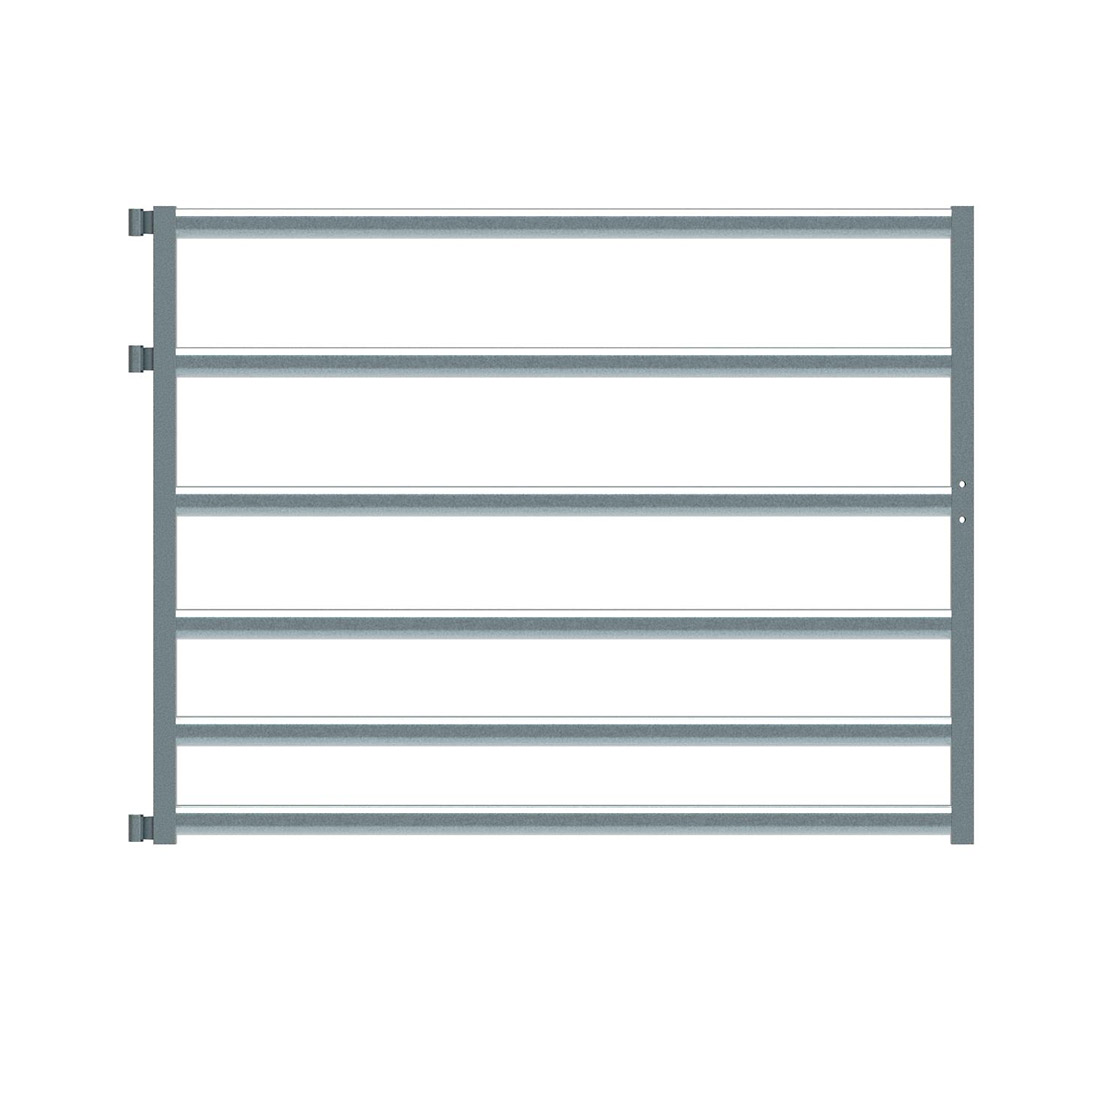 Cattle Gate 6 Rail (1800mm x 1400mm High)